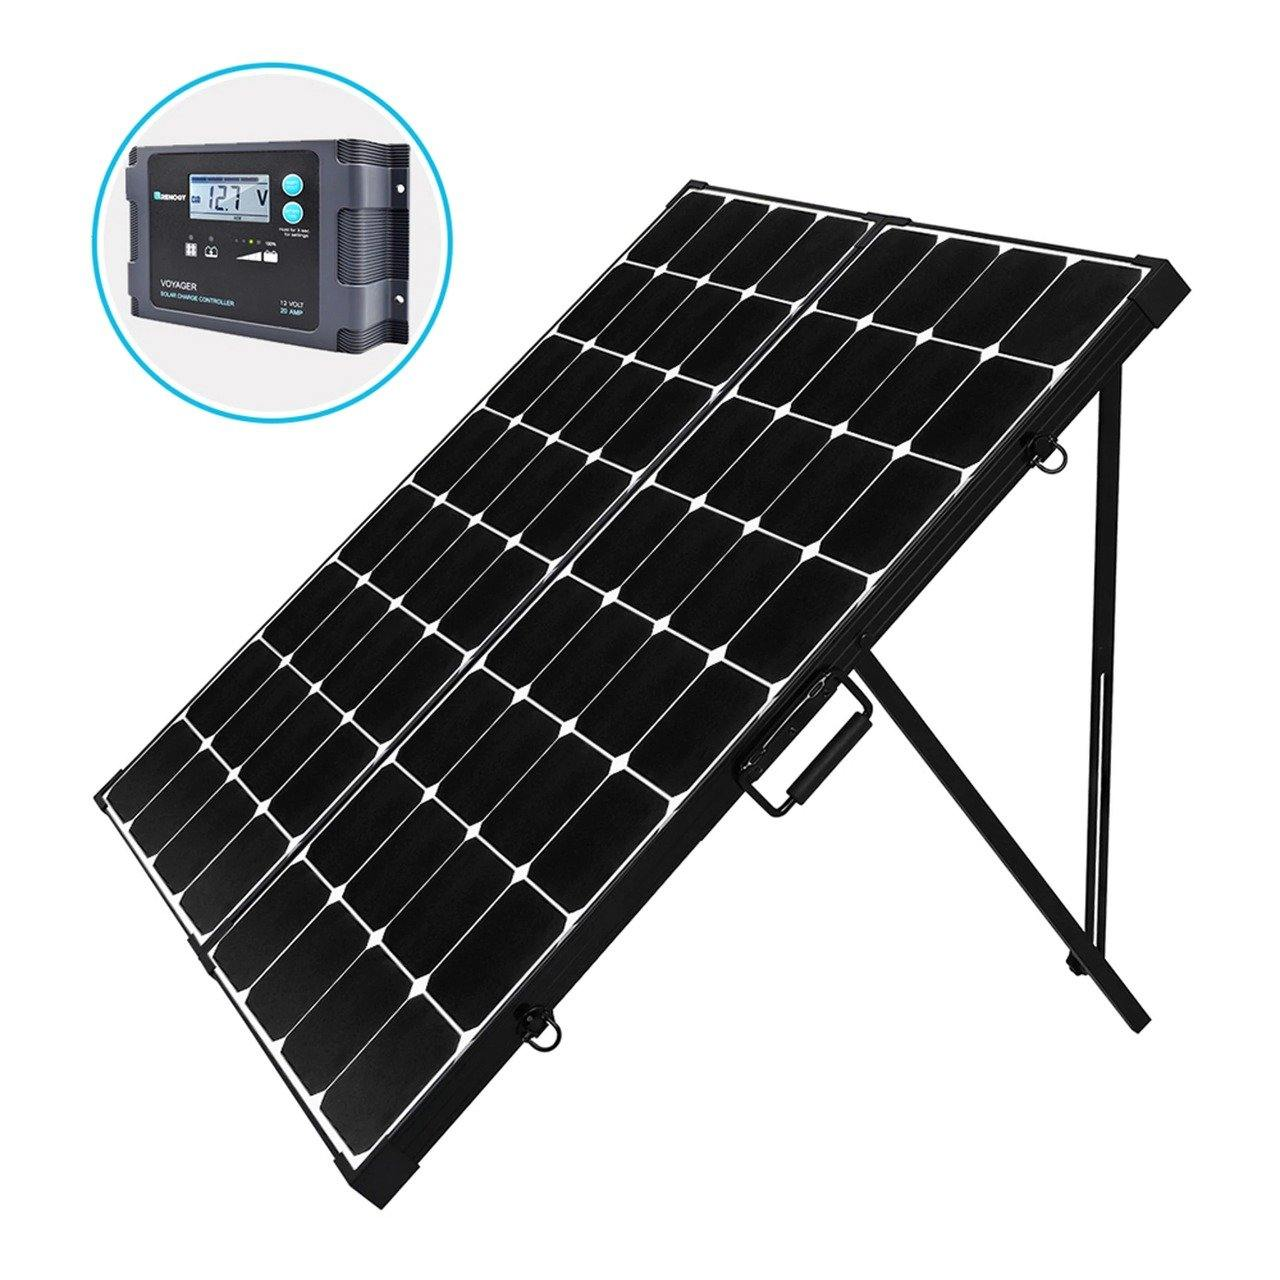 250 Watt Folding Mono Crystalline Solar Suitcase Kit 12v or 24v - iPower